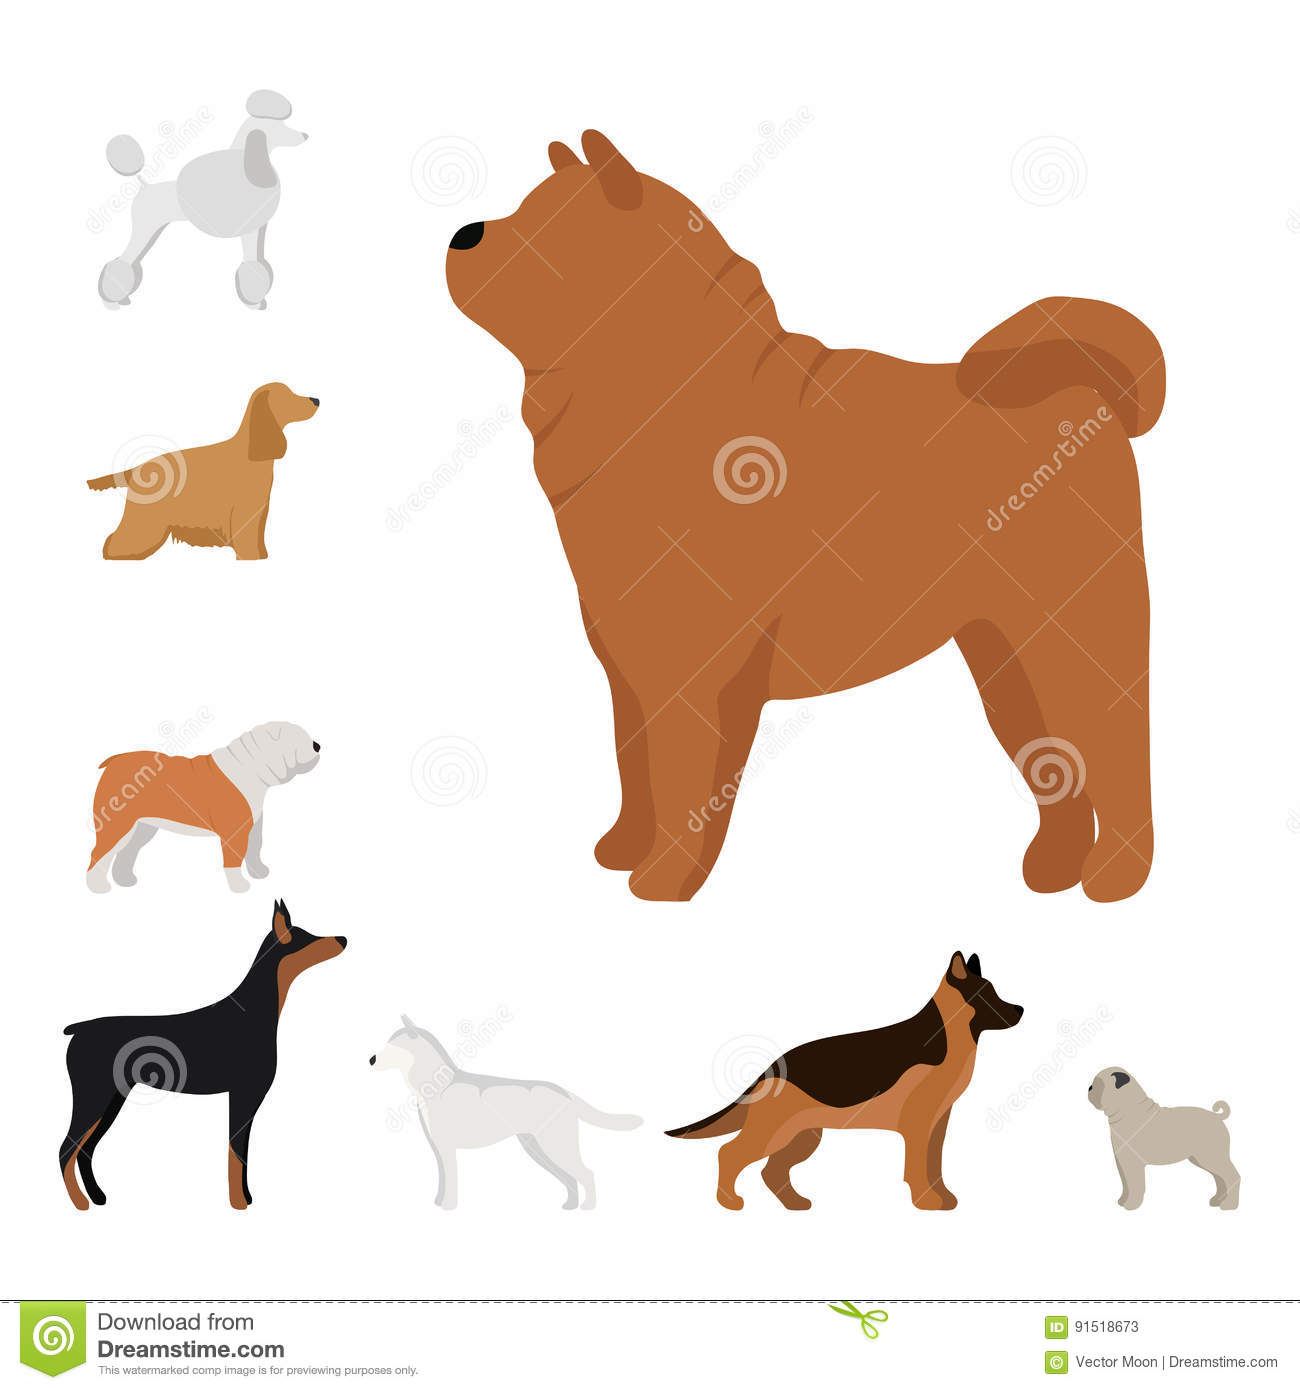 Funny cartoon dog character bread in cartoon style vector illustration.